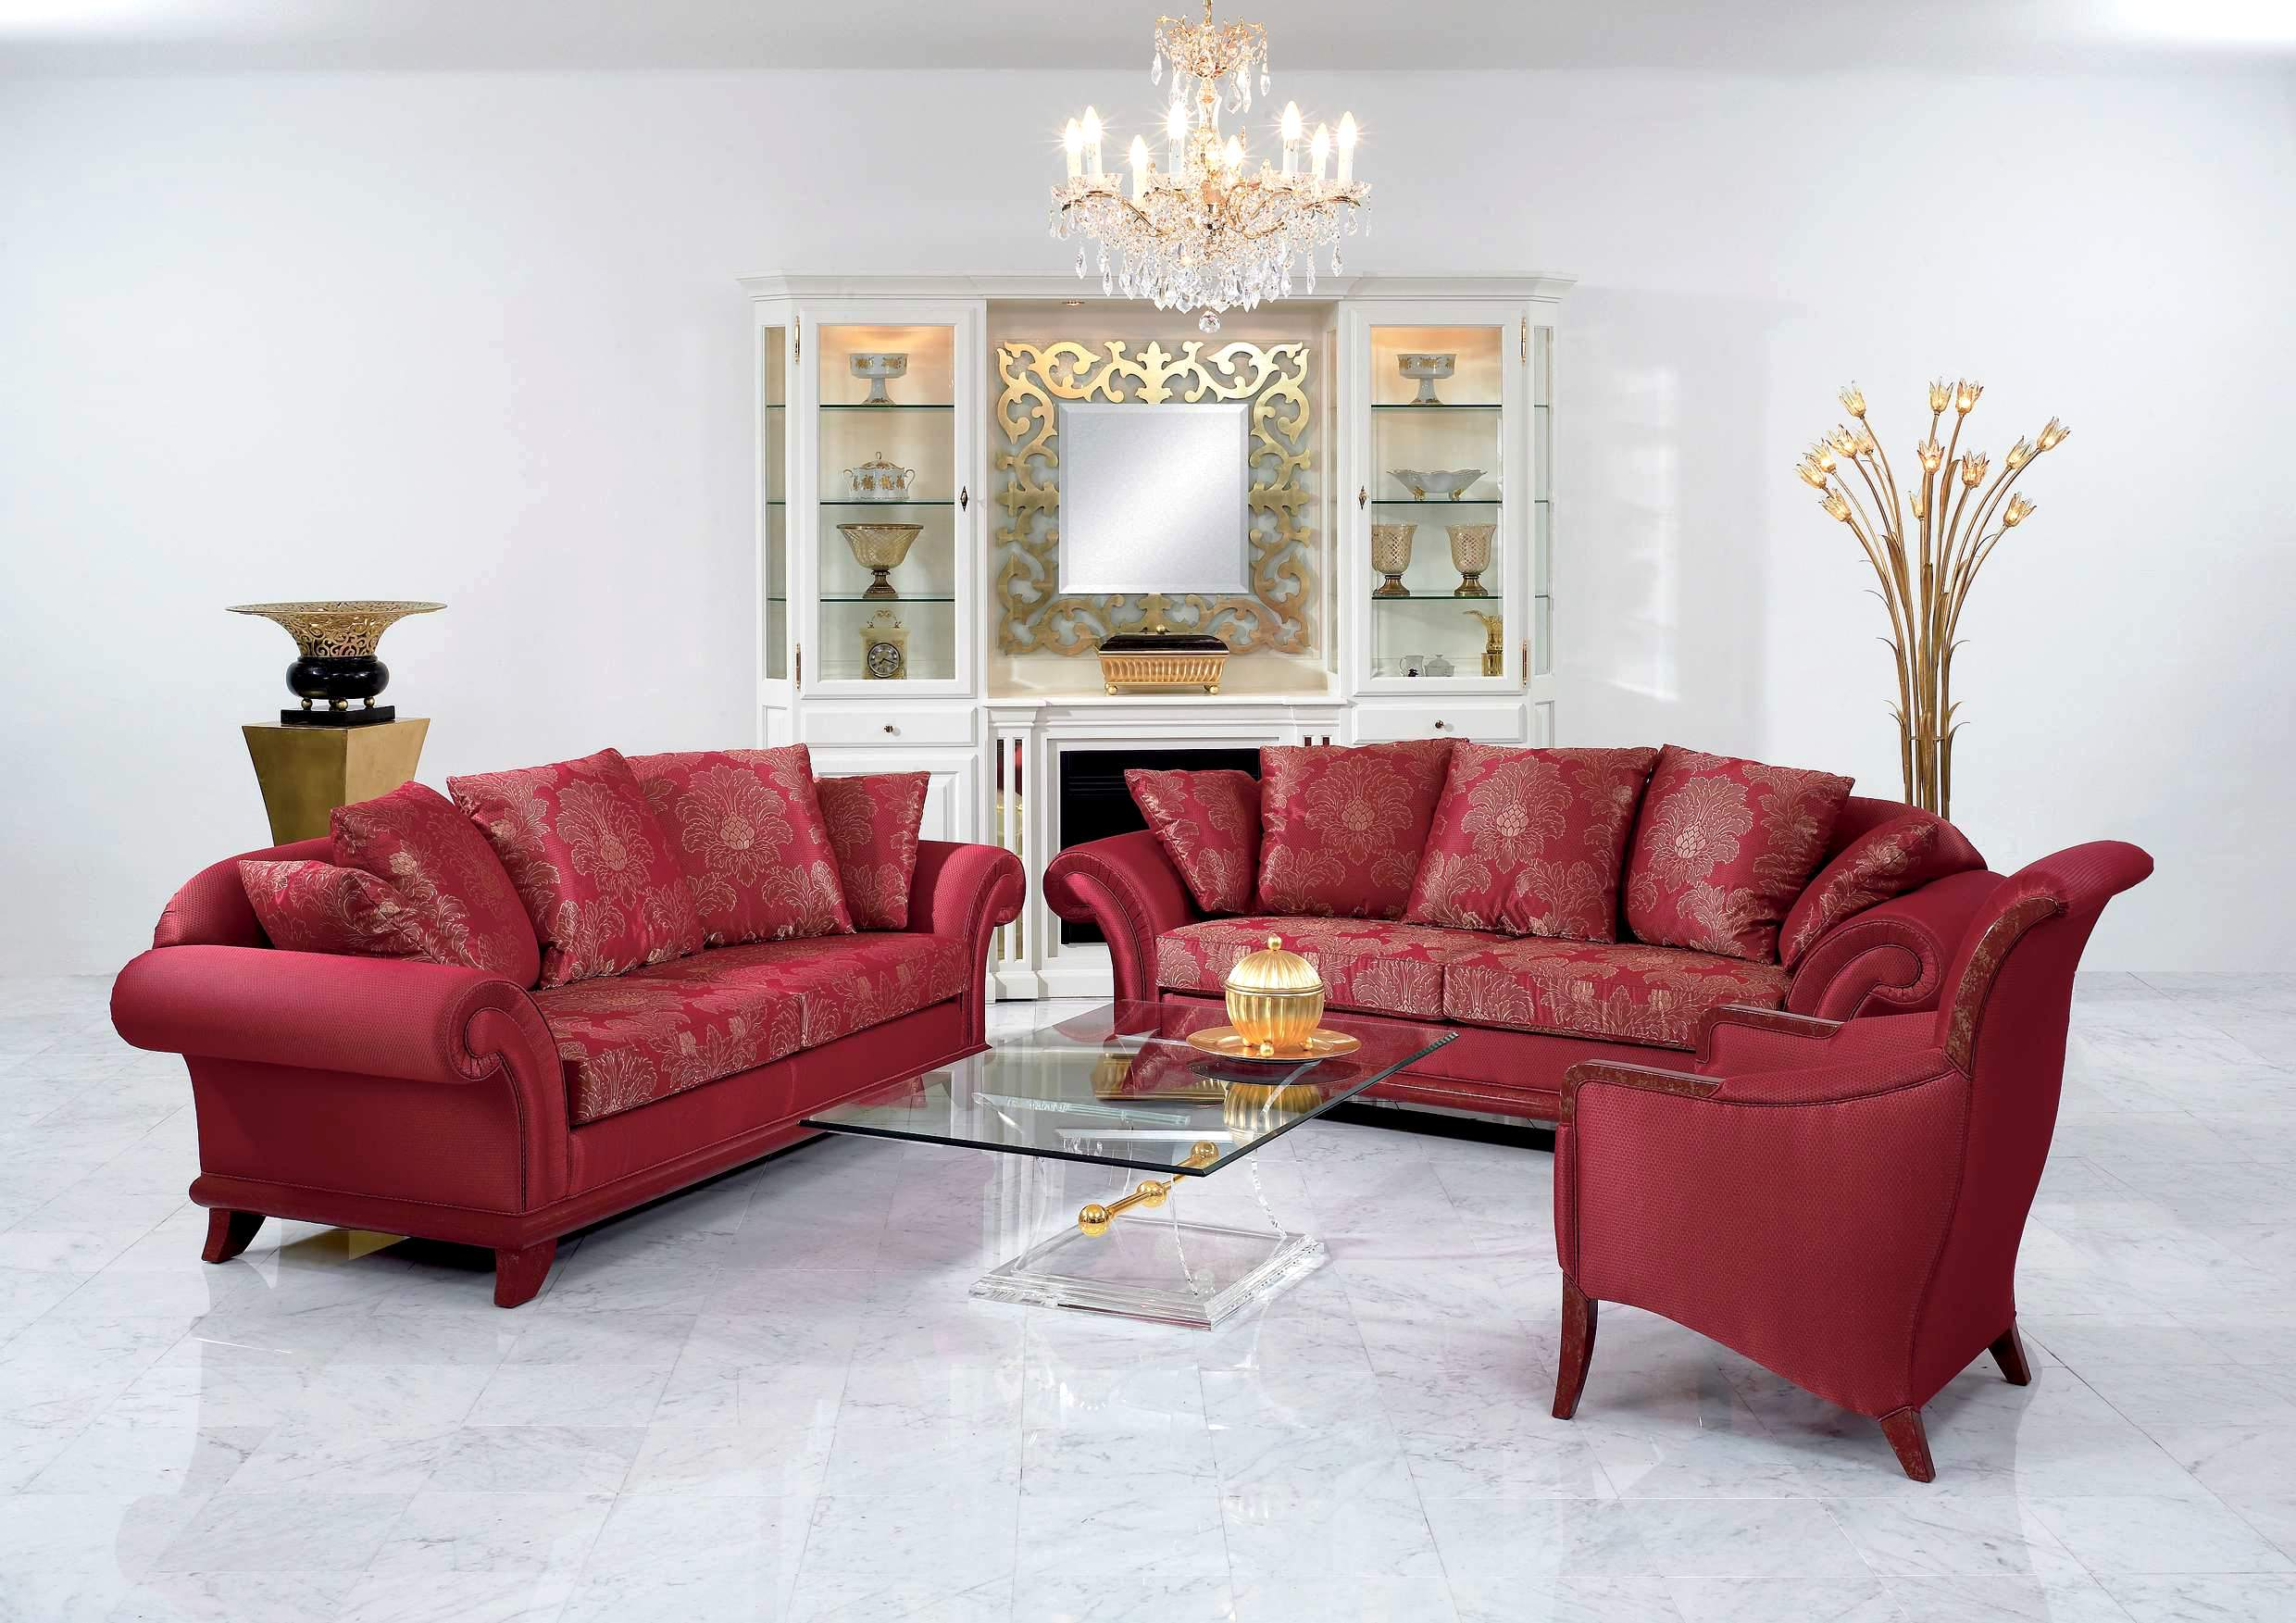 Décor Tips To Plan Your Living Room